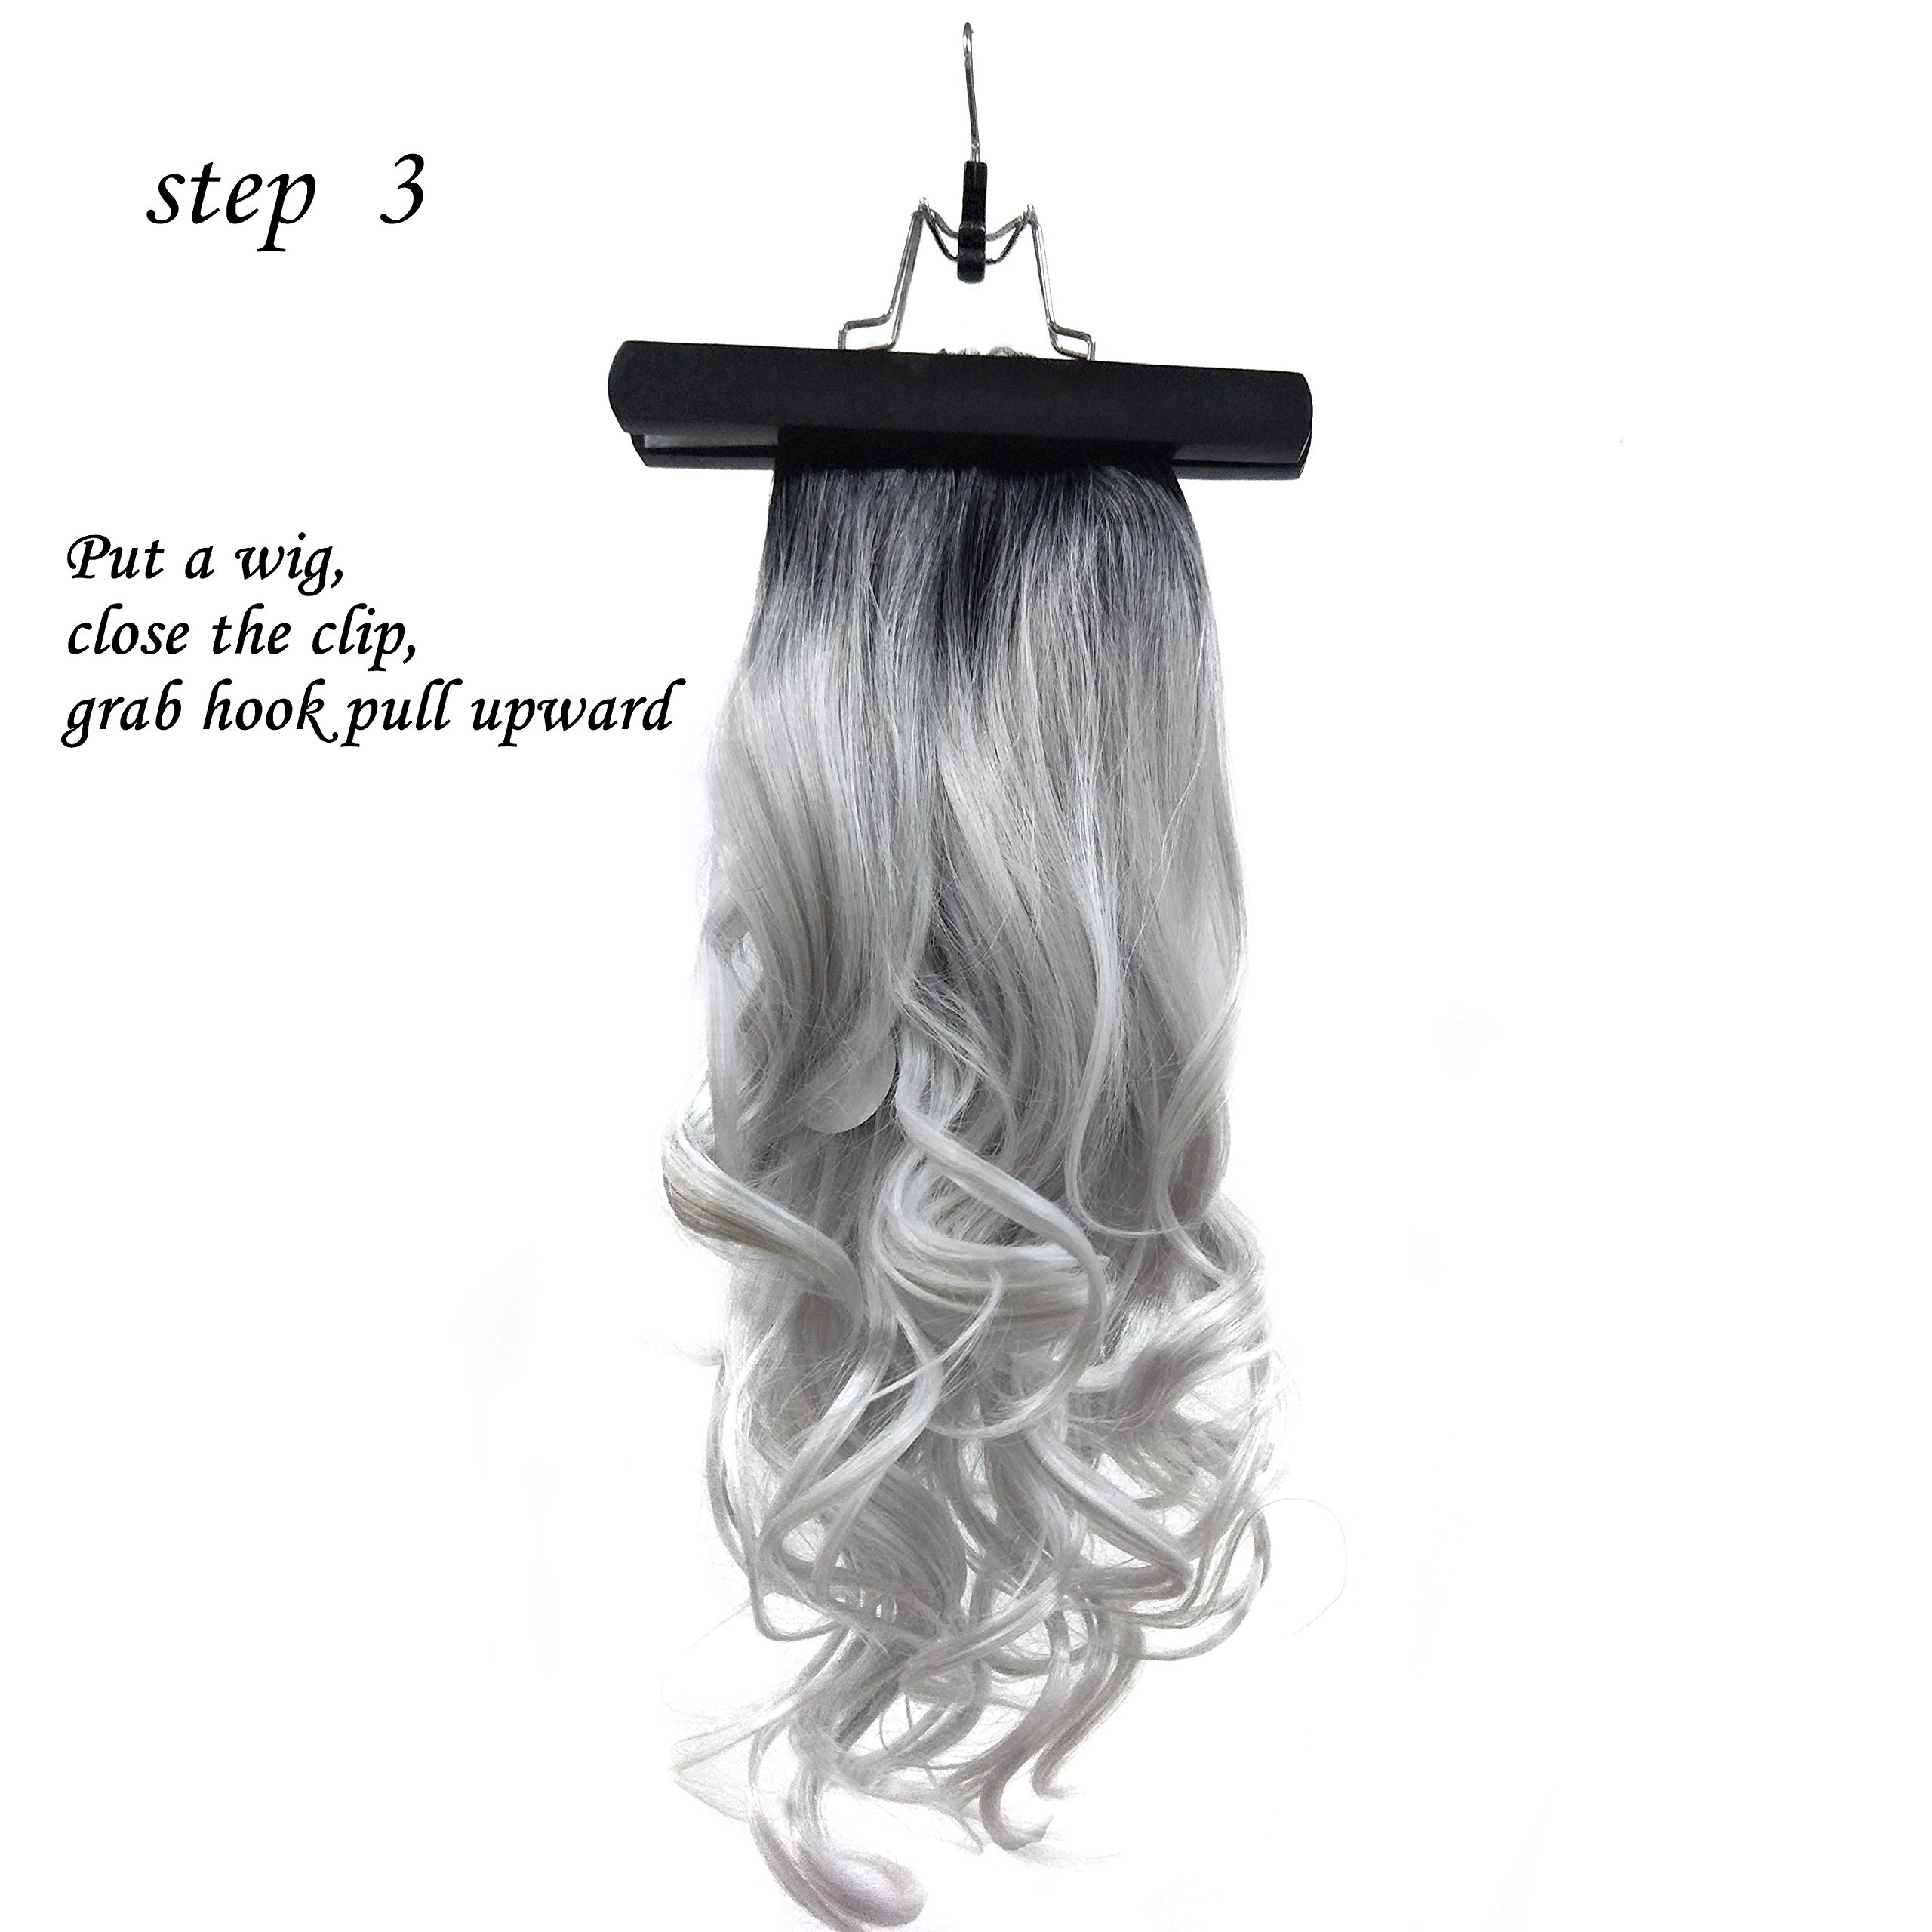 Xingoukeji Dustproof Wig Storage Bag Hair Extension Holder Hair Hanger with Zipper, Black by xingoukeji (Image #7)